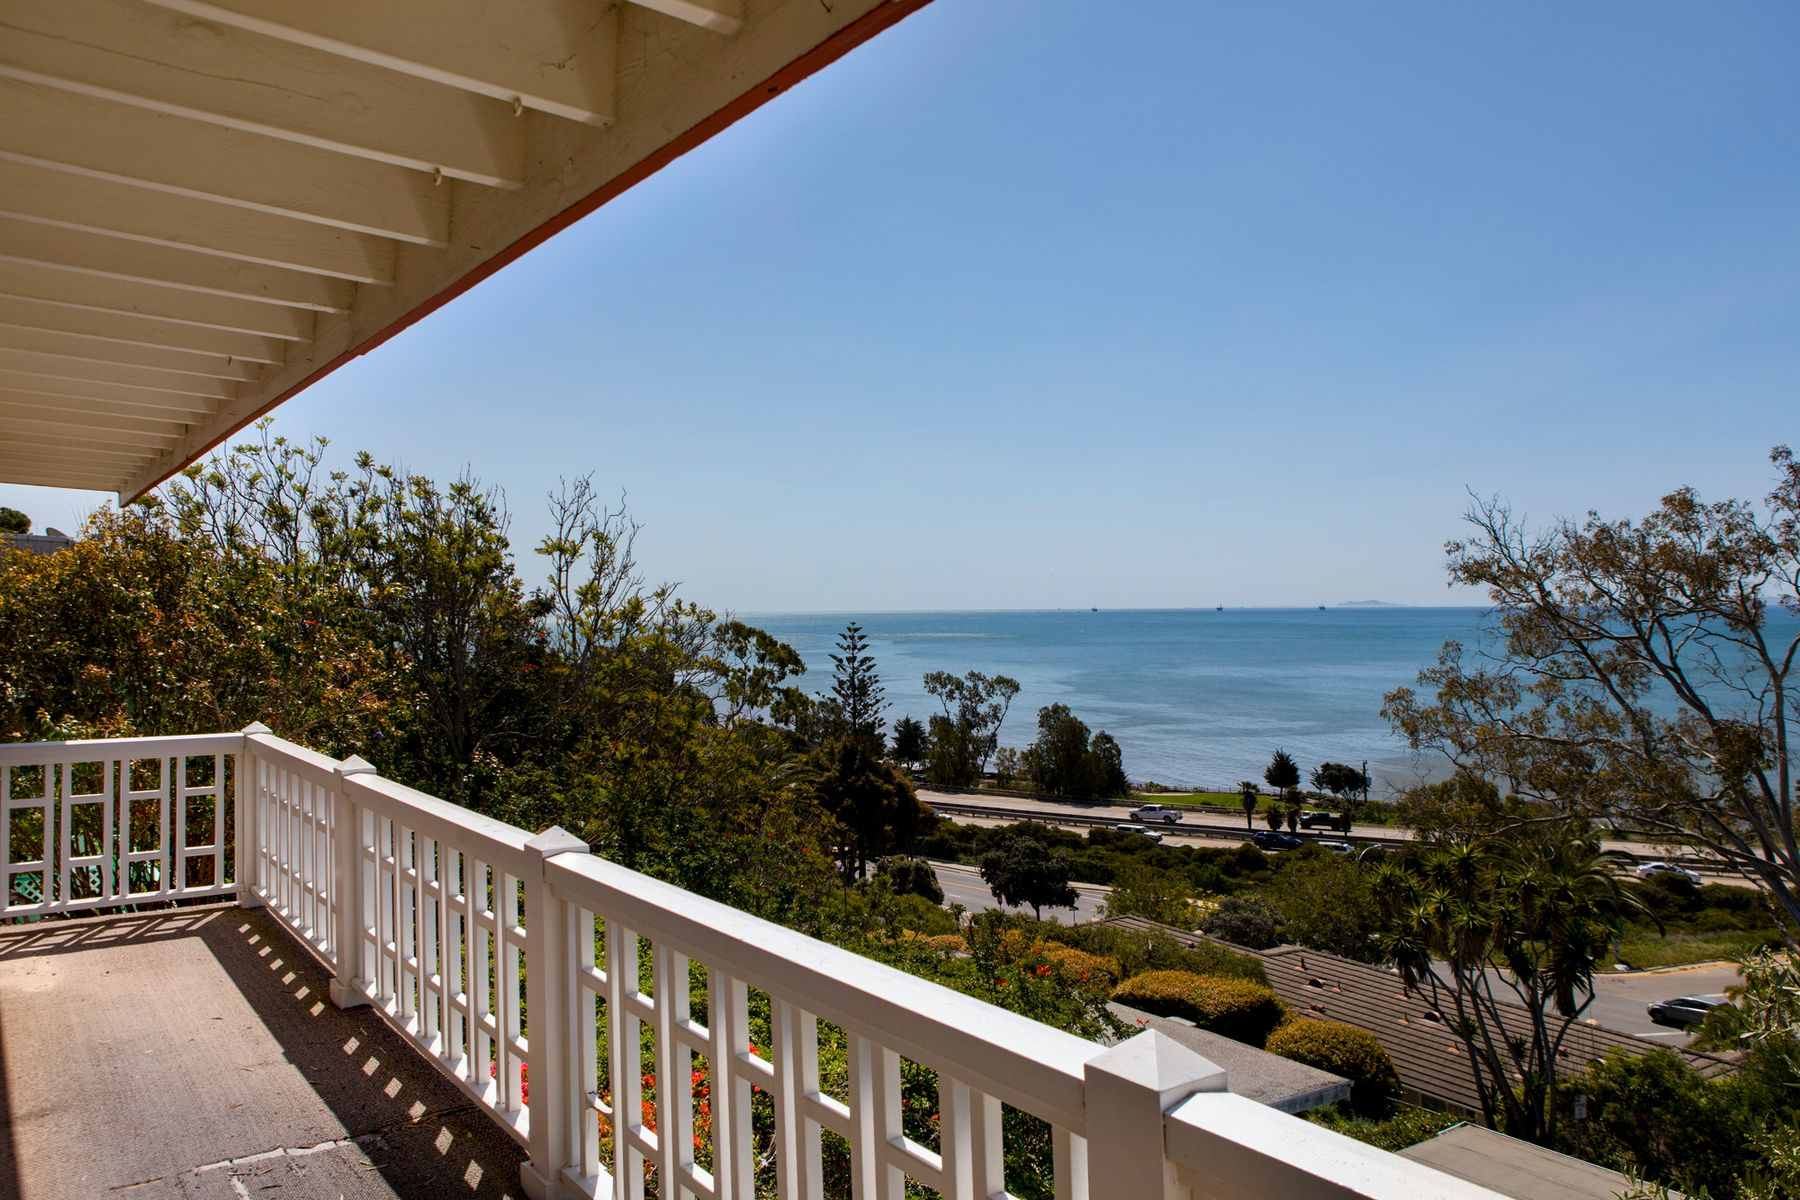 Property for Sale at Vacation Living by the Beach 2187 Lillie Avenue Summerland, California 93067 United States